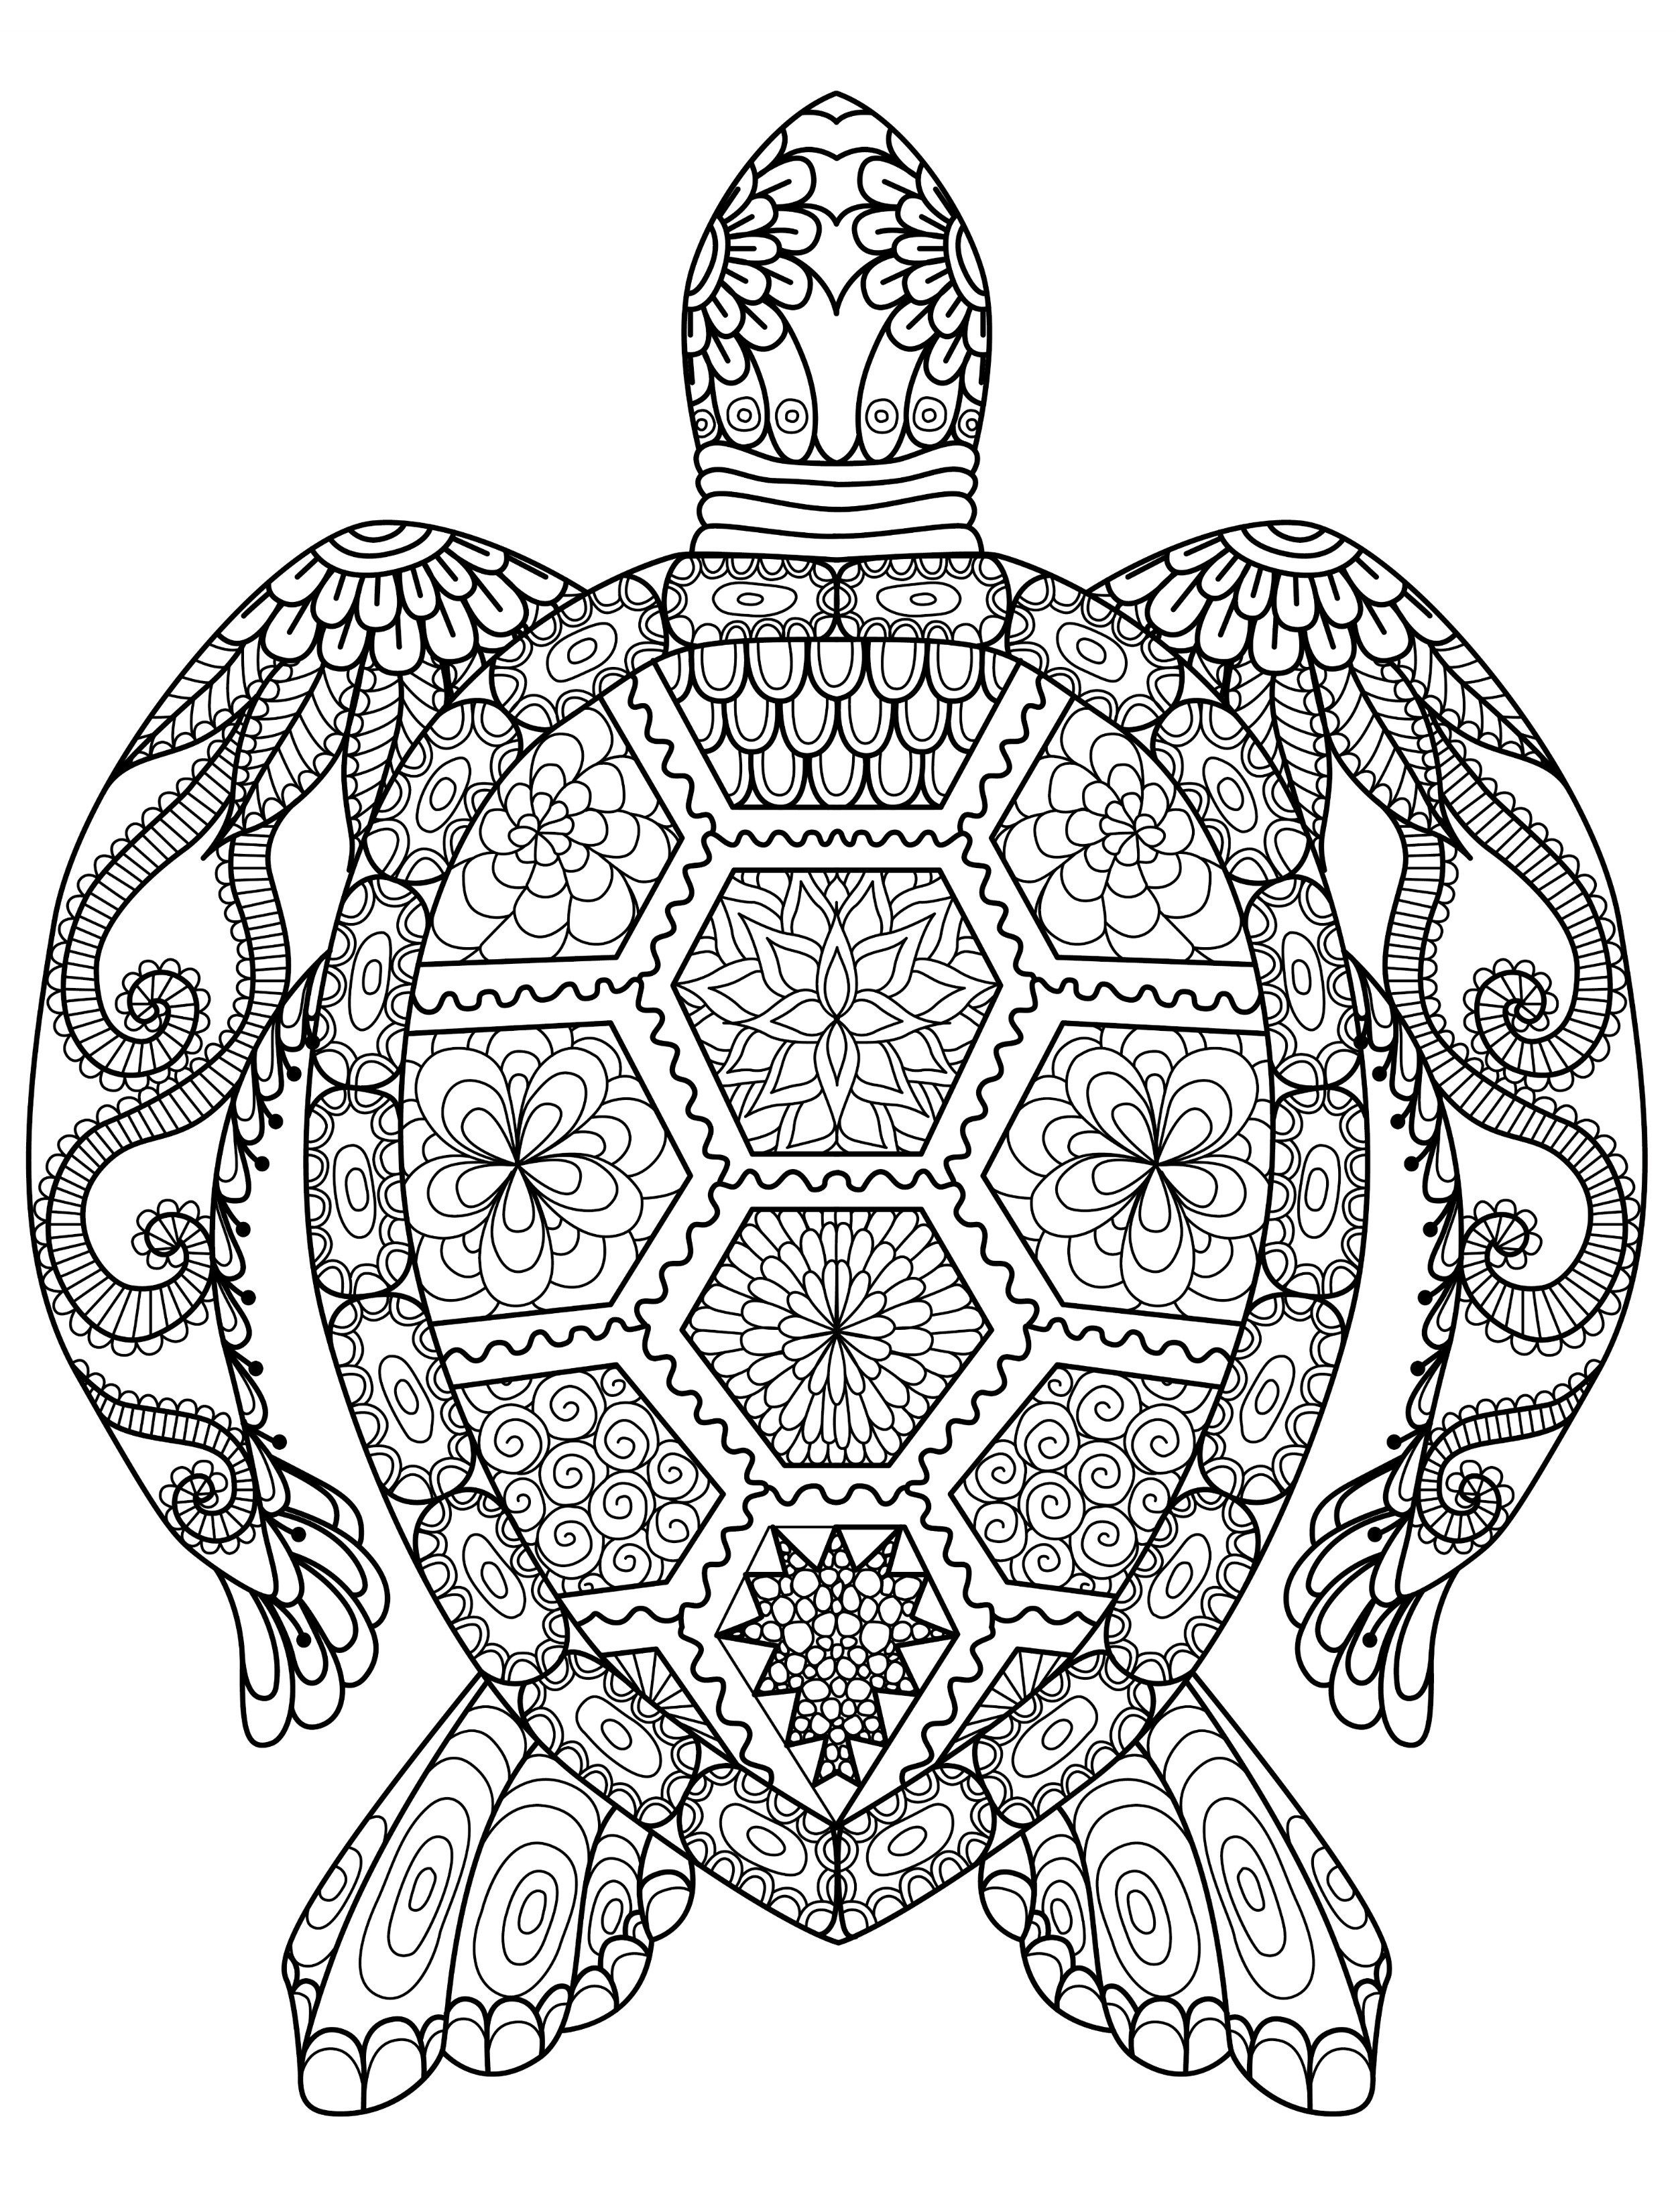 cool coloring pictures 10 cool coloring pages free premium templates coloring pictures cool